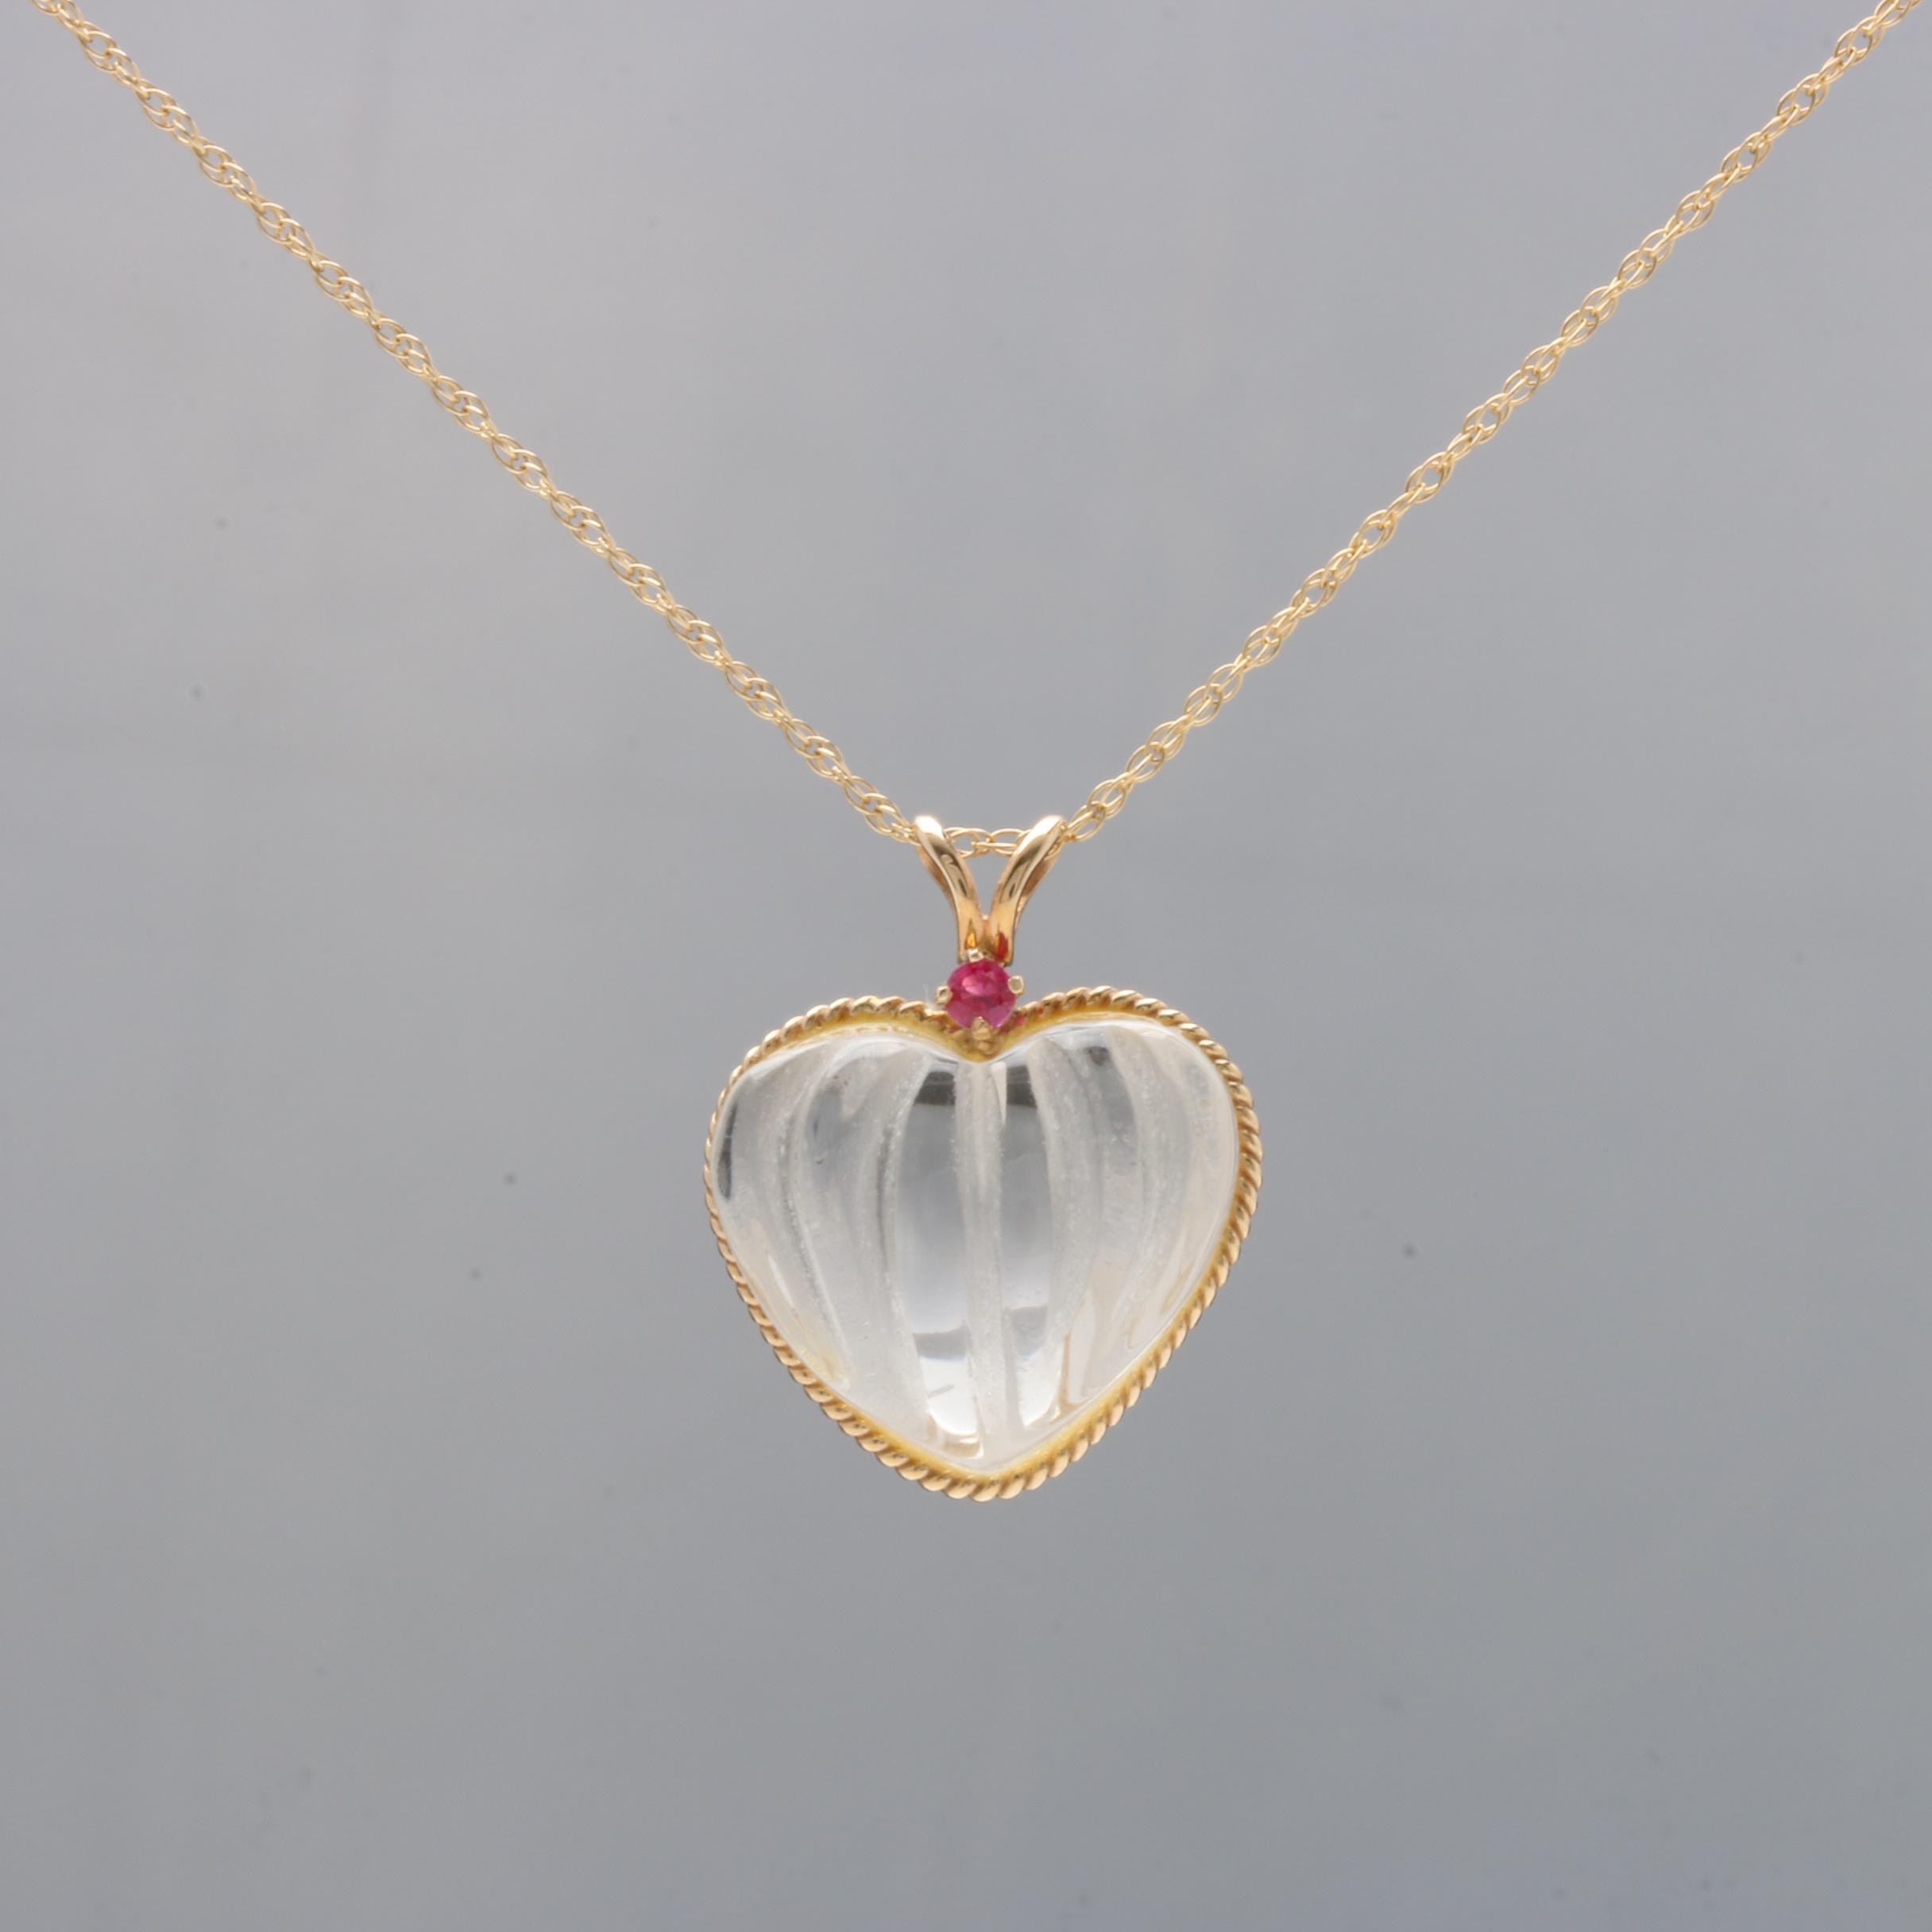 14K Yellow Gold Quartz and Ruby Heart Pendant Necklace